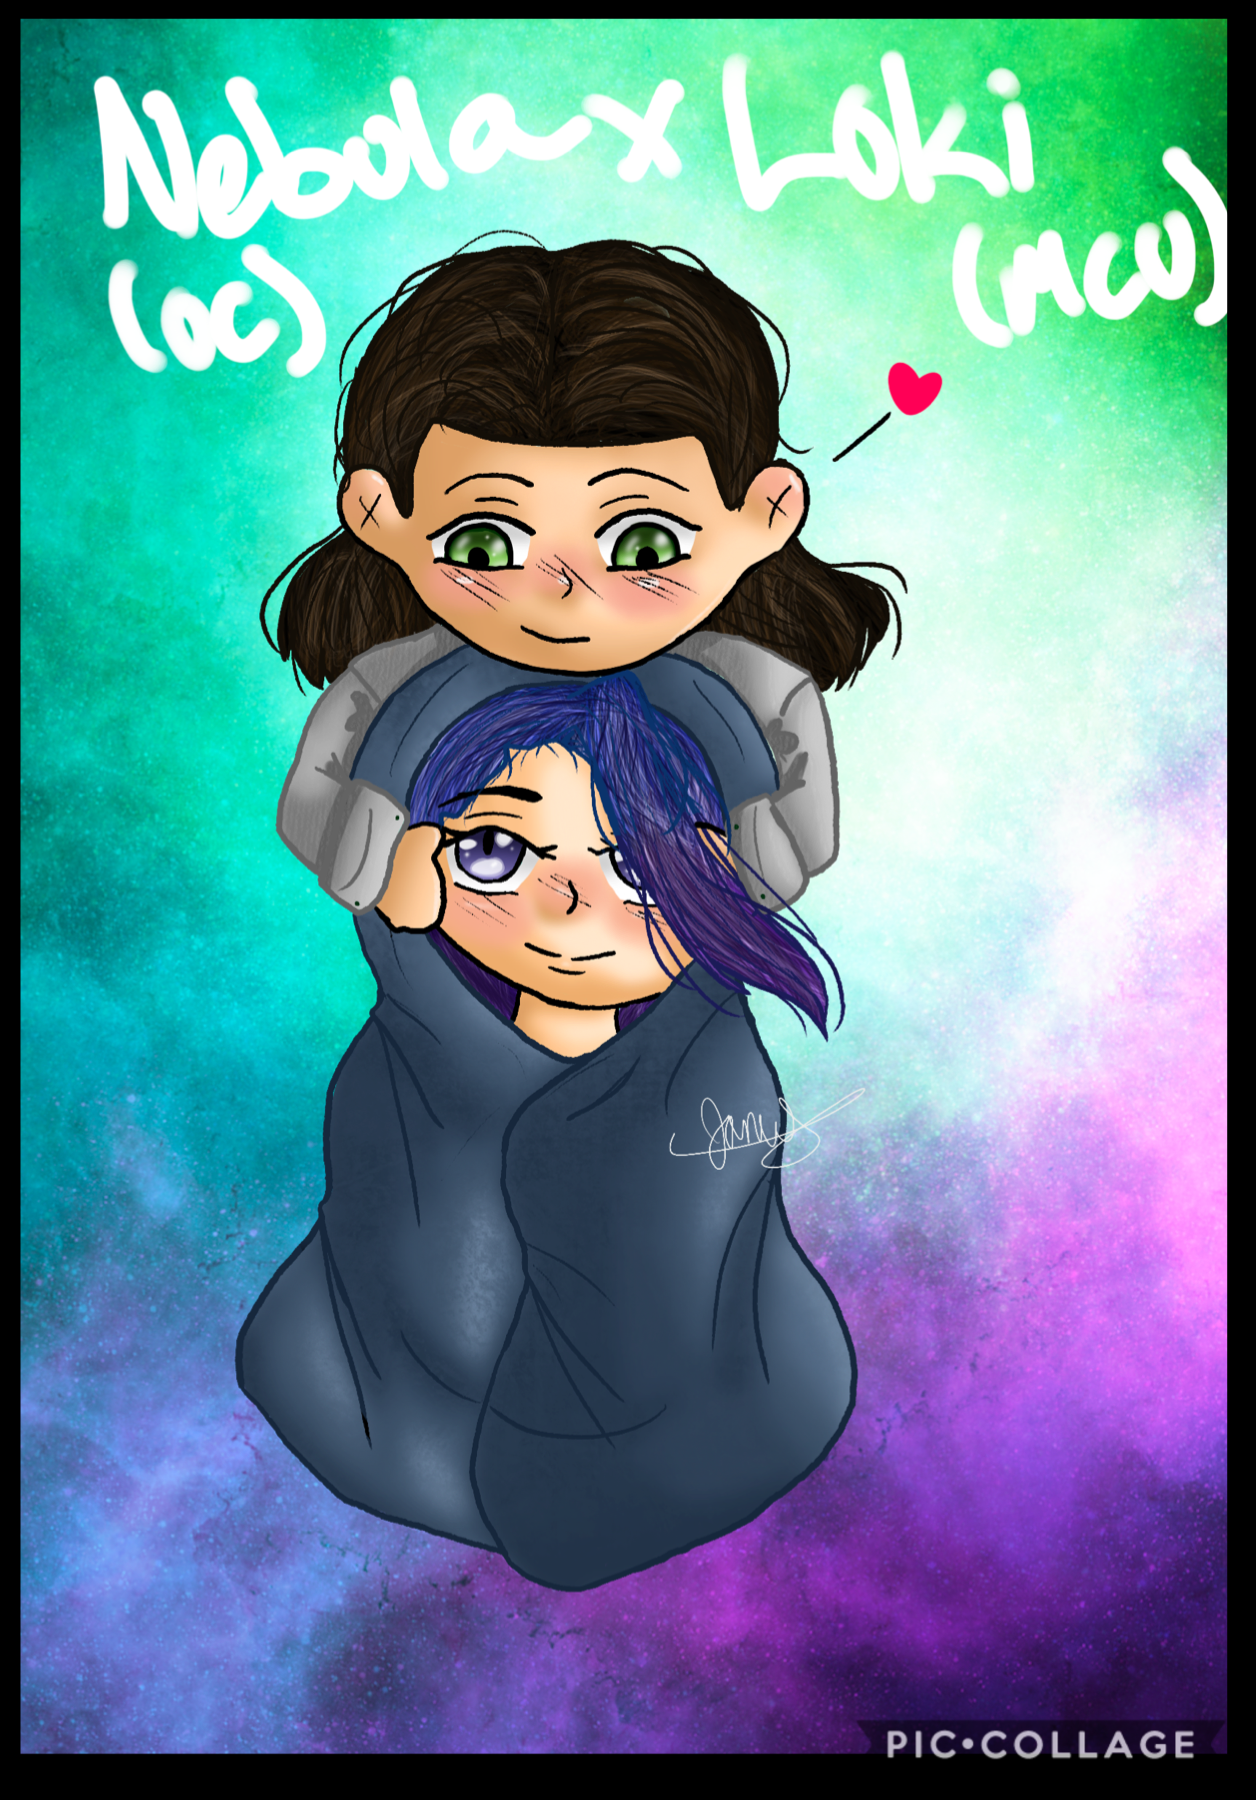 Happy Valentine's Day, all! Here's a drawing of my oc Nebula and Loki :))